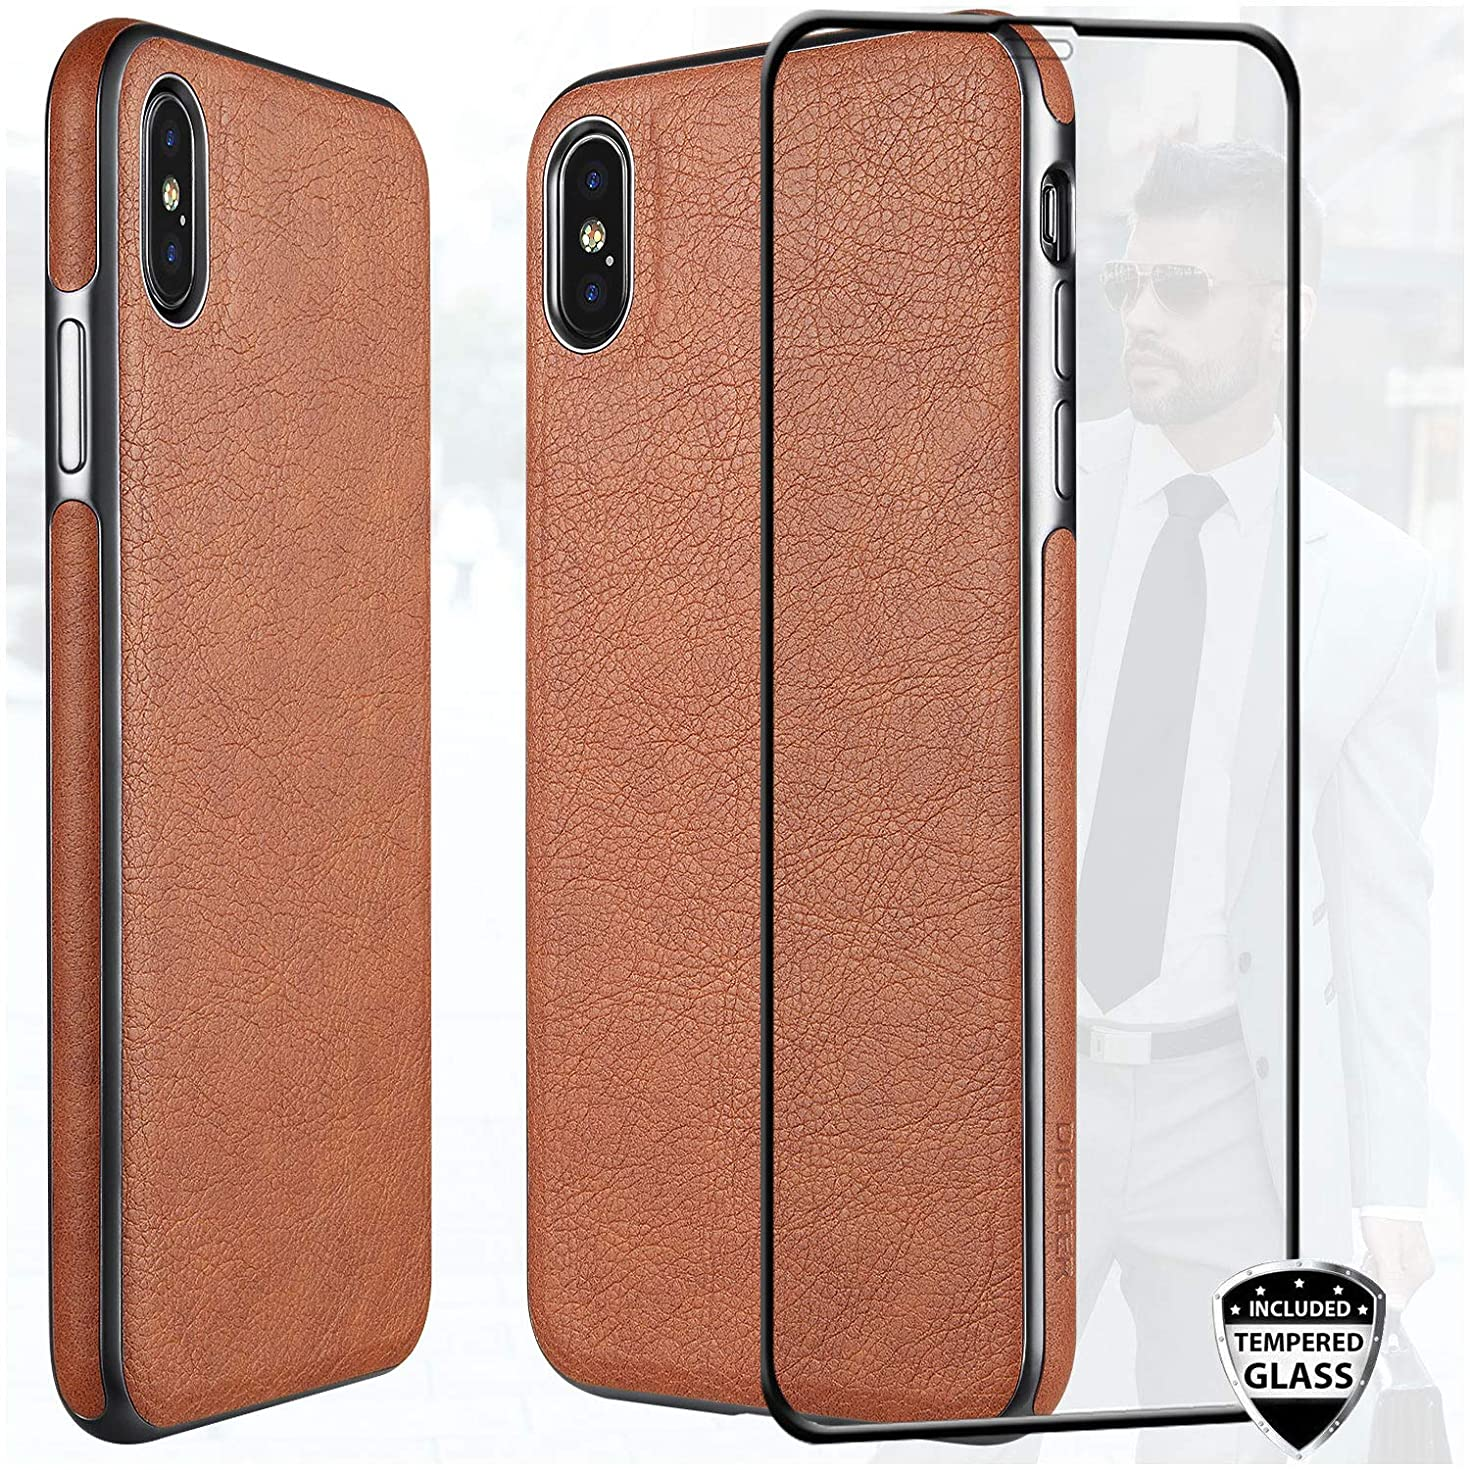 iPhone Xs Max Case with Glass Screen Protector,DICHEER Luxury Matte Brown Leather Case for Men,Dual Layer Hybrid Defender Soft TPU Bumper Best Protective Cover Classy Phone Case for iPhone XS Max 6.5